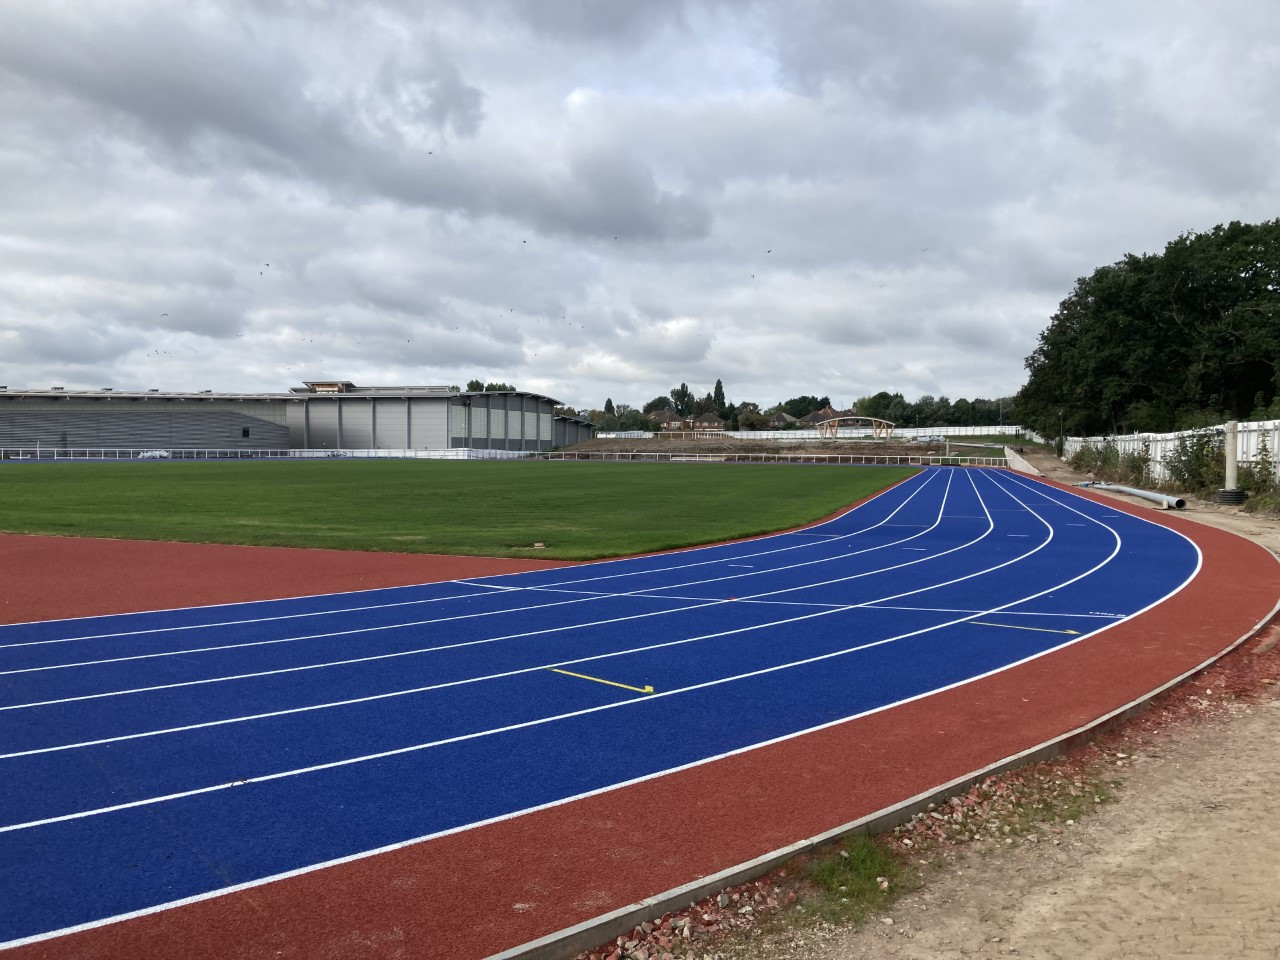 Work has also been taking place on a brand new running track adjacent to the Alexander Stadium ©ITG